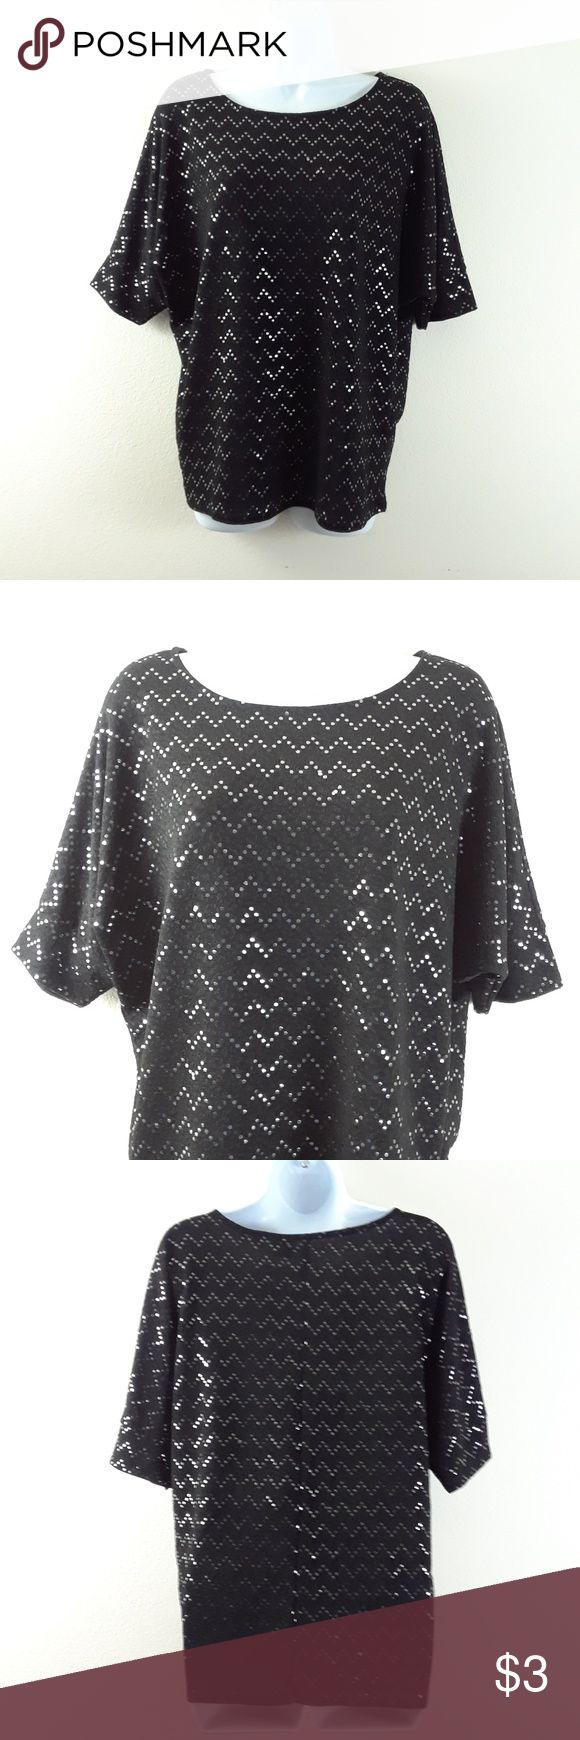 NEW DIRECTIONS BLACK SEQUINED CHEVRON TOP Size medium, 95% polyester,  5% spandex. new directions Tops Blouses